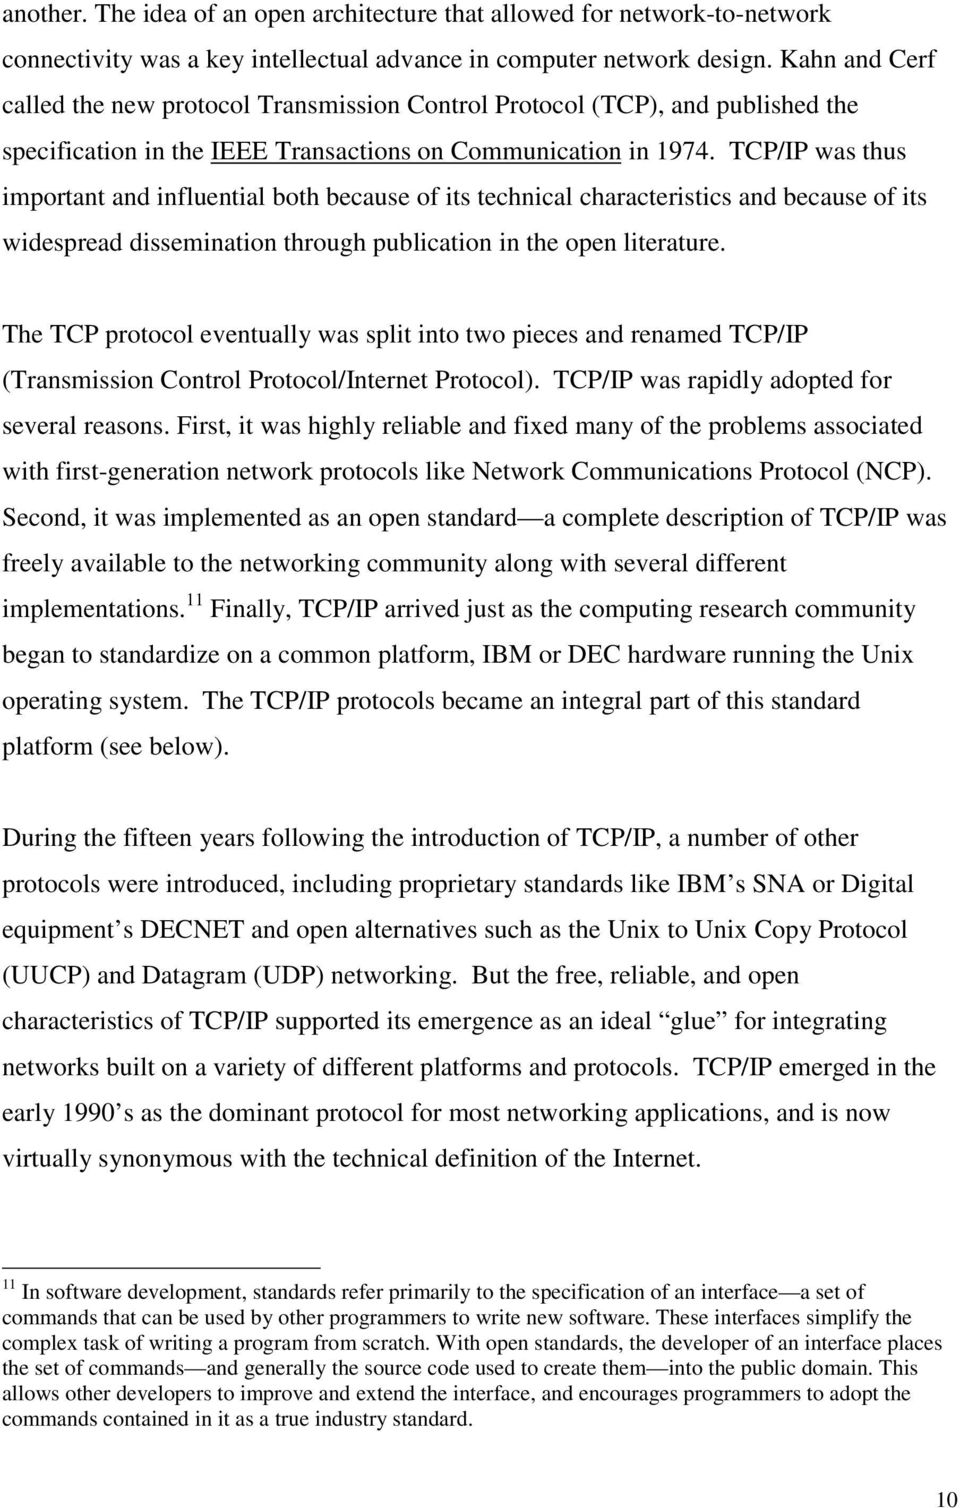 TCP/IP was thus important and influential both because of its technical characteristics and because of its widespread dissemination through publication in the open literature.